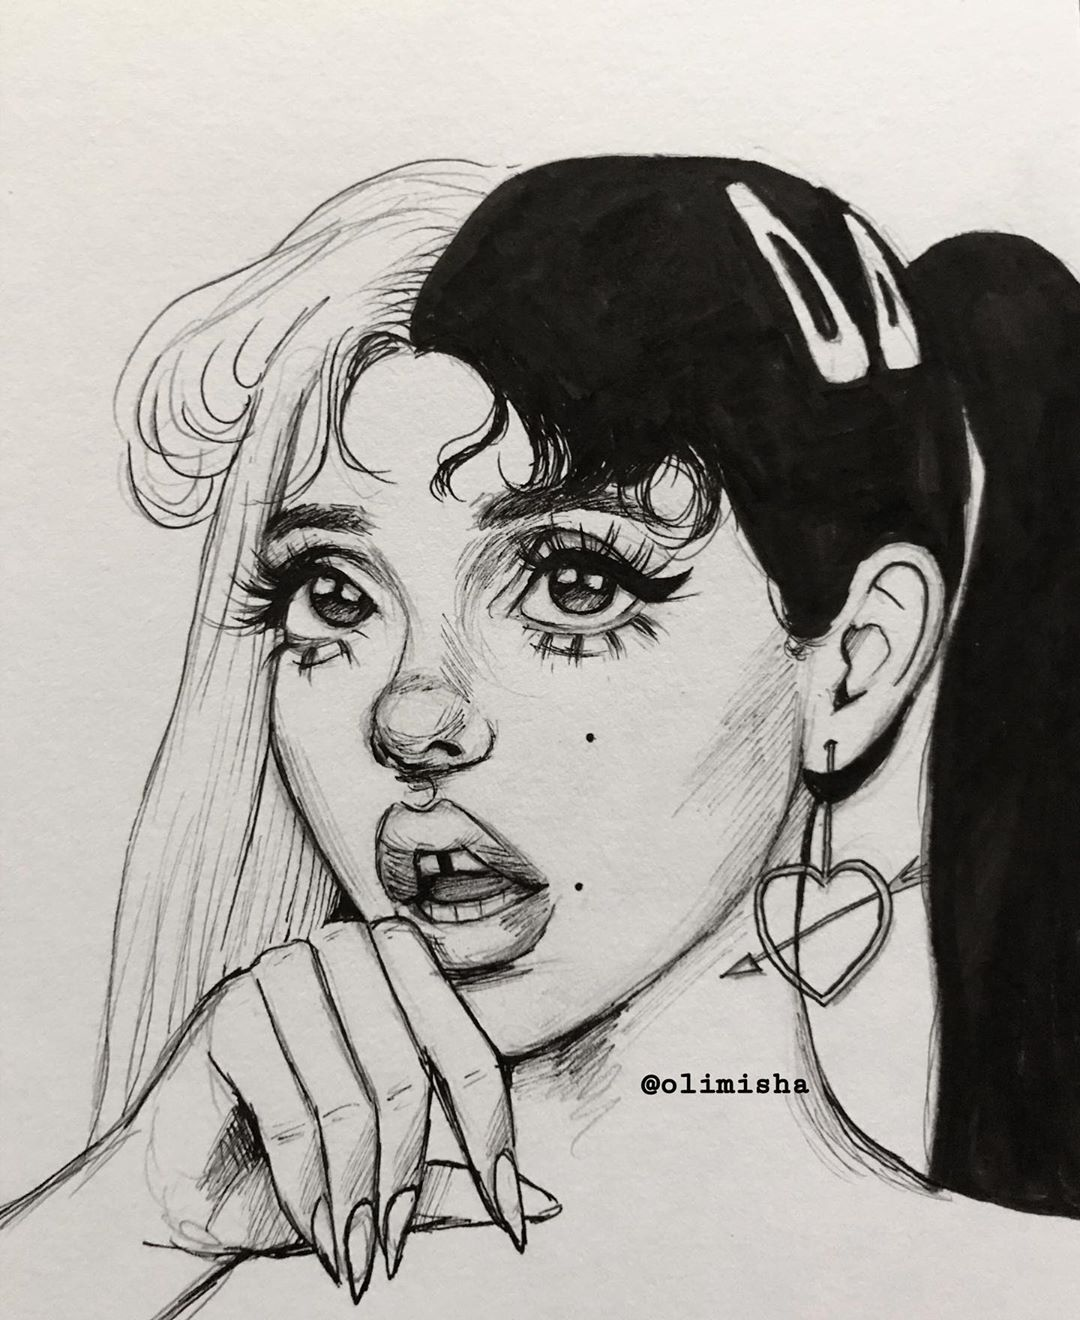 Liv Olimisha Posted On Instagram A Couple Ink Drawings I Did Today First One Is Littlebodybigheart Second On Melanie Martinez Drawings Drawings Sketches